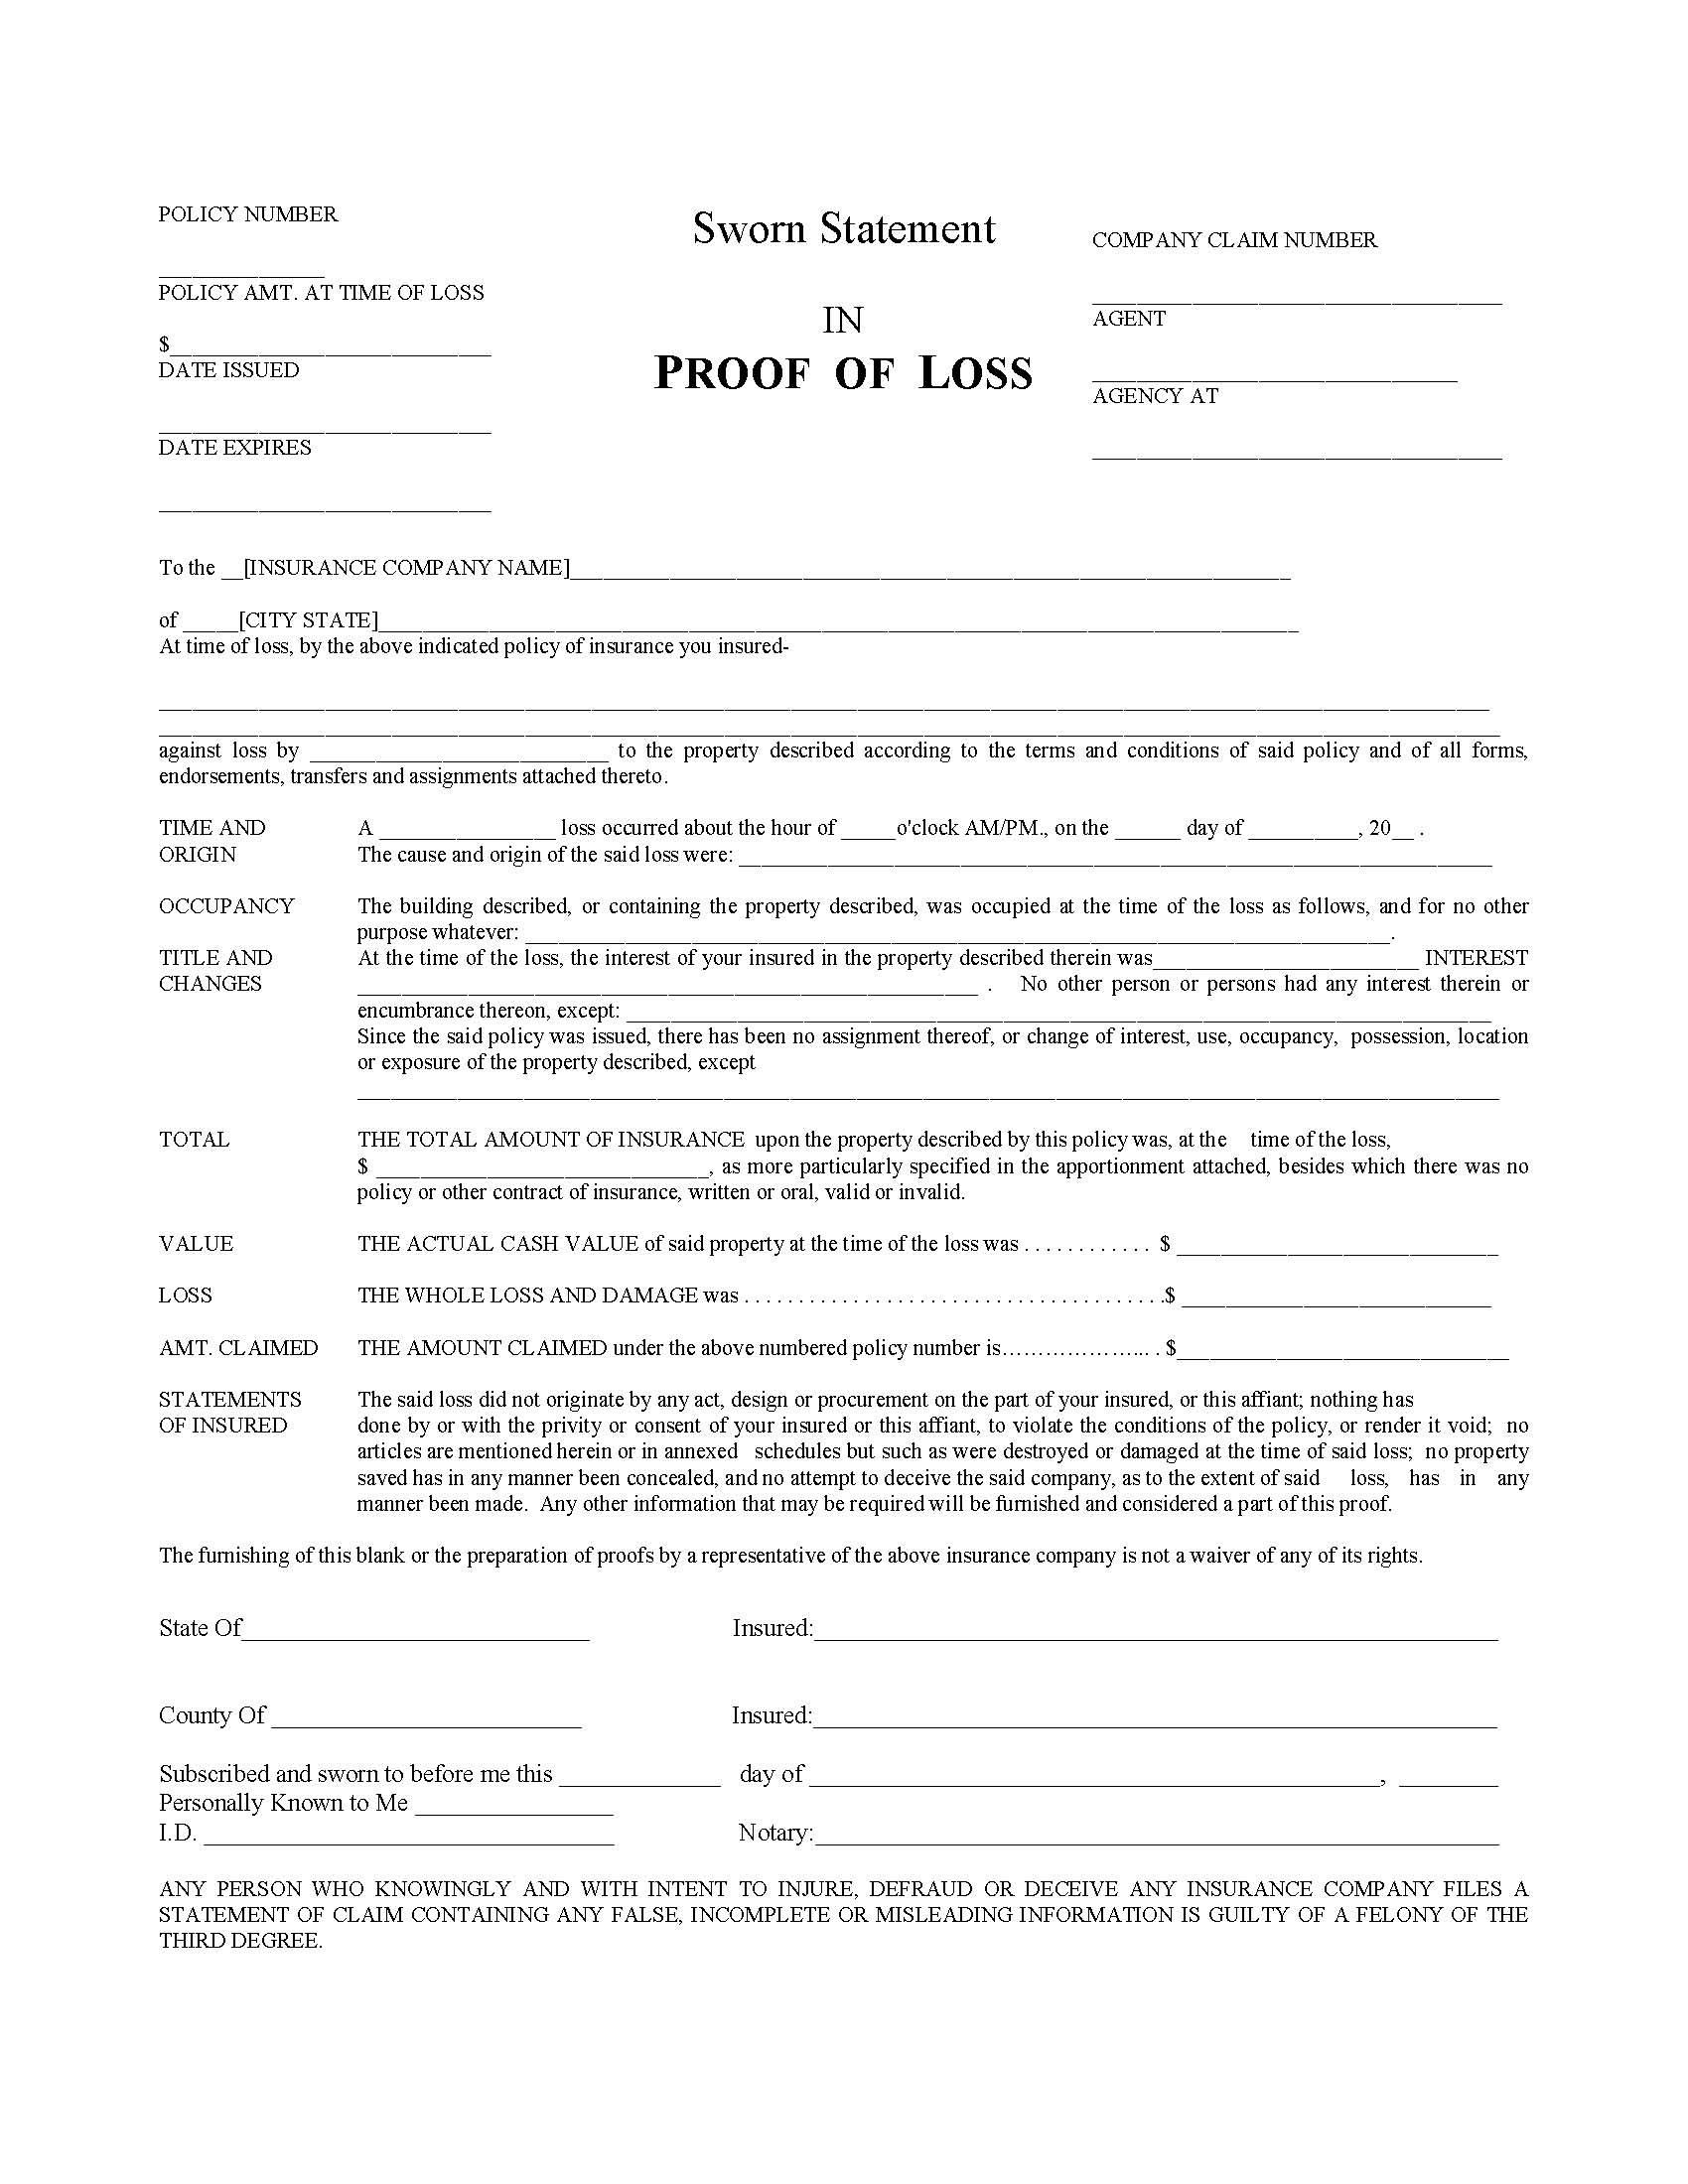 Signed Numbers Worksheet Doc